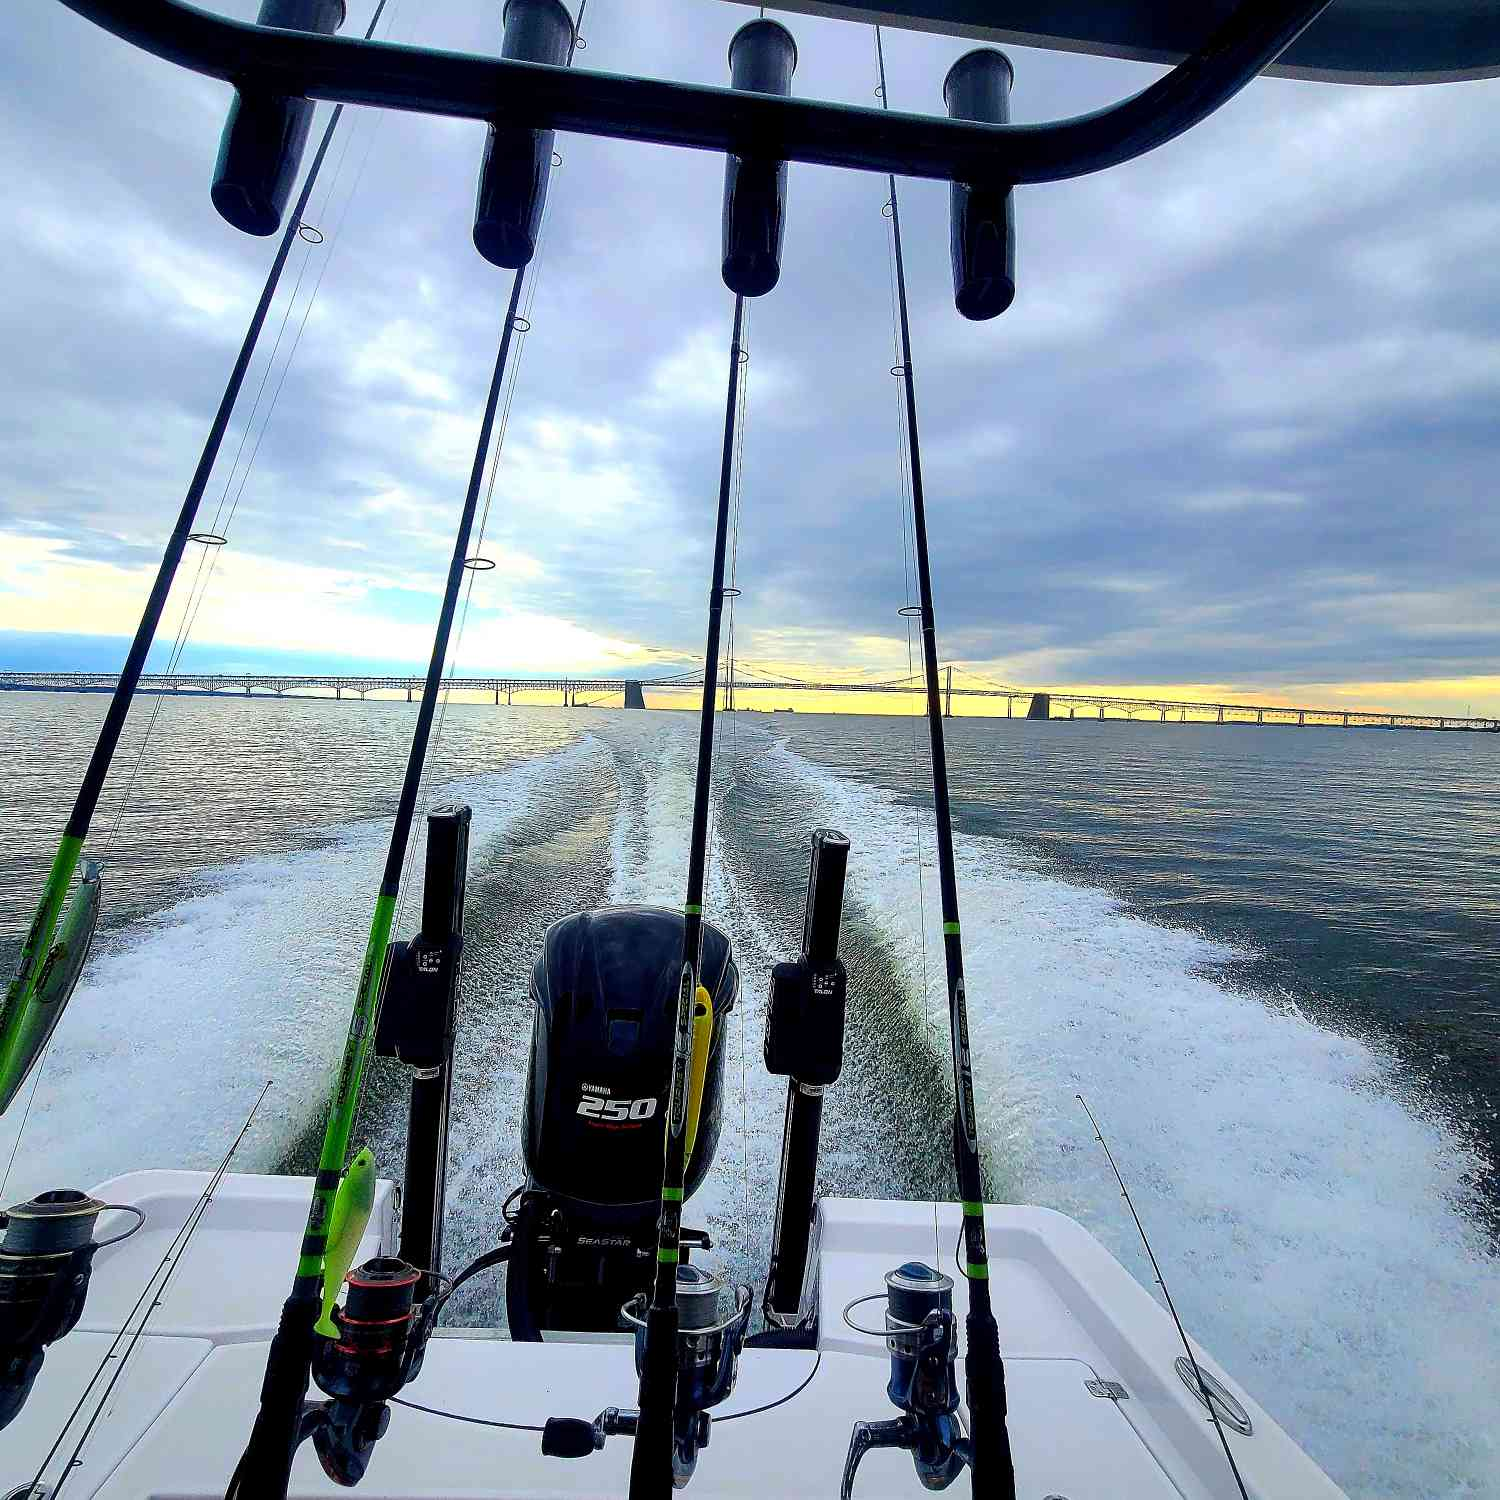 Title: Heading back from the Chesapeake Bay Bridge - On board their Sportsman Masters 227 Bay Boat - Location: Chesapeake Bay. Participating in the Photo Contest #SportsmanDecember2020